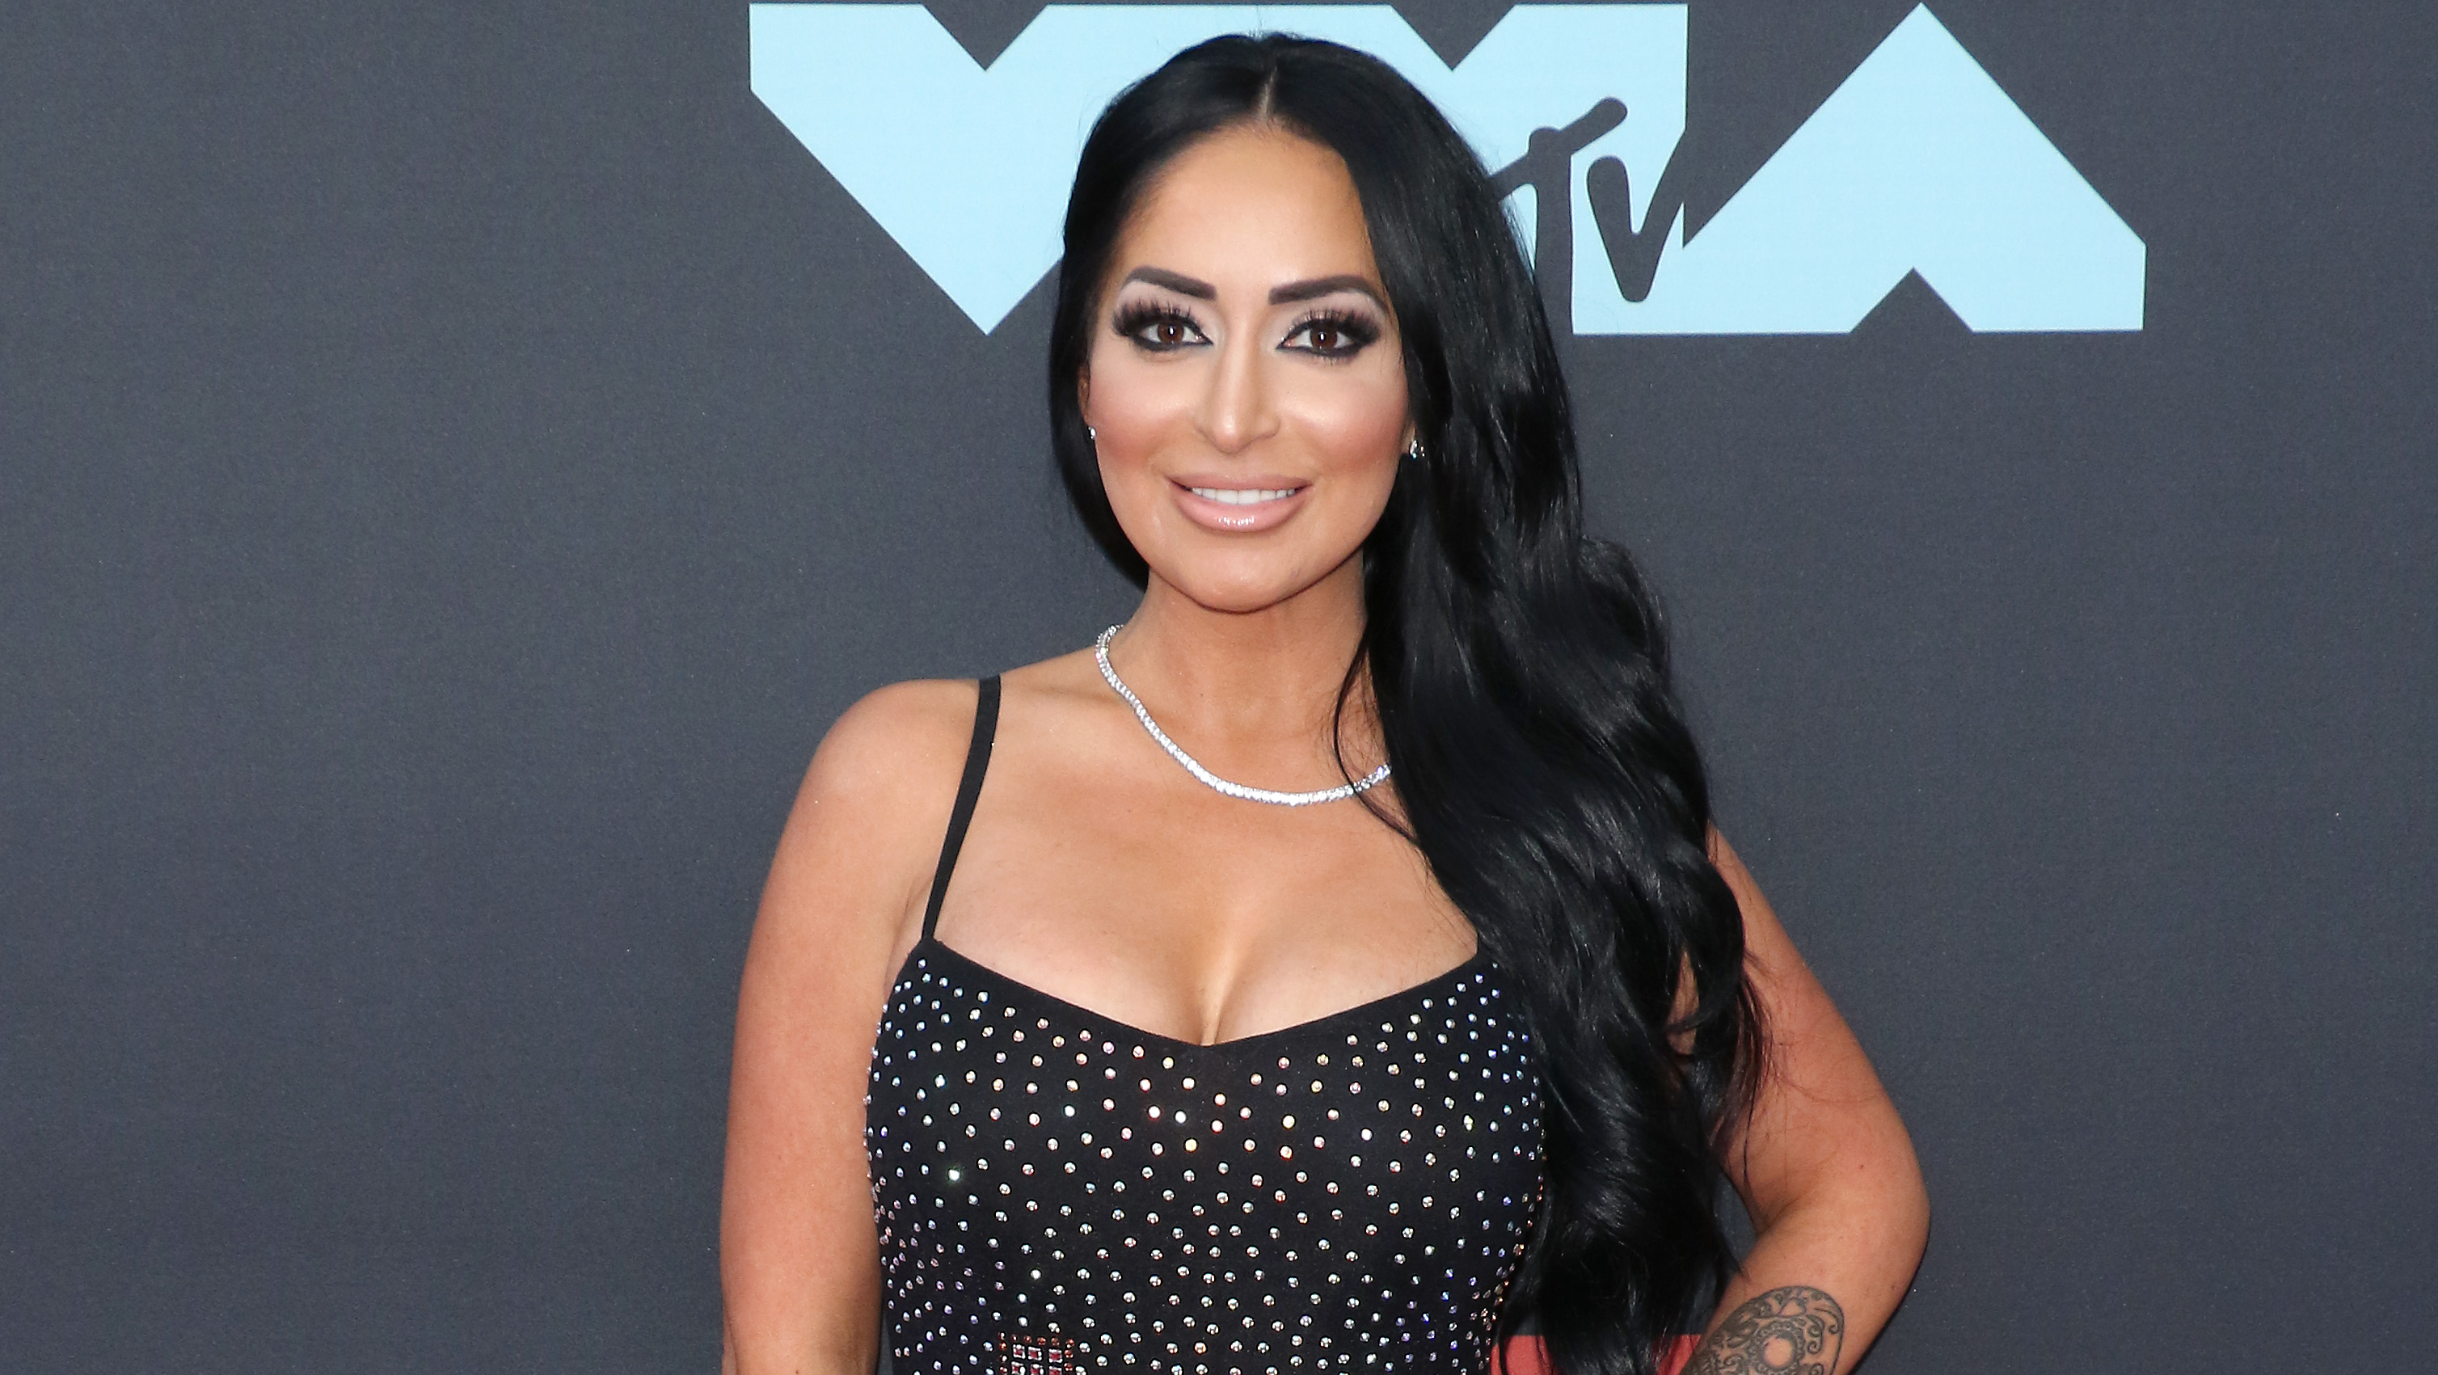 Angelina Jersey Shore Nude jersey shore' star angelina shares touching message to her